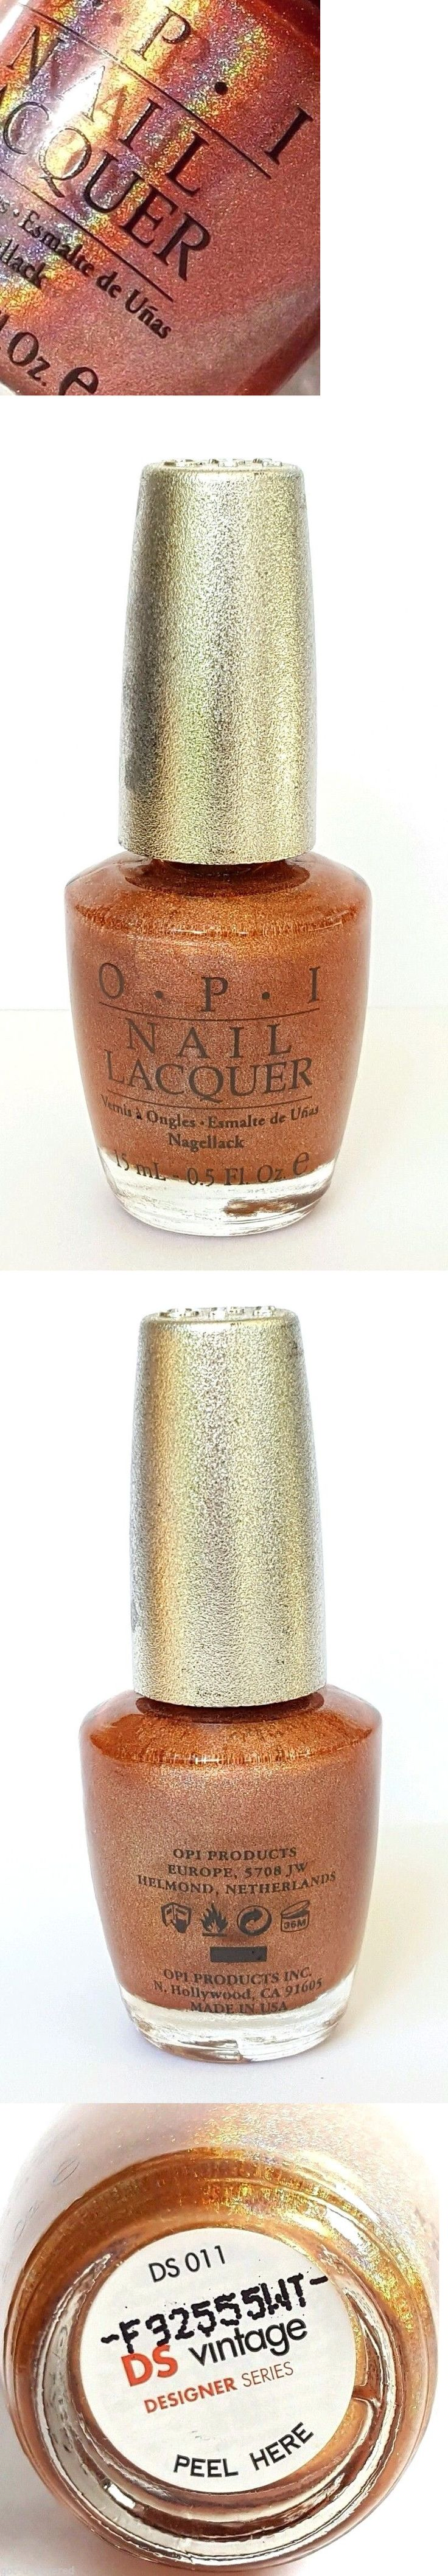 Nail Polish: Opi Designer Series Vintage Ds 011 Holographic New Nail Polish Lacaquer BUY IT NOW ONLY: $31.95